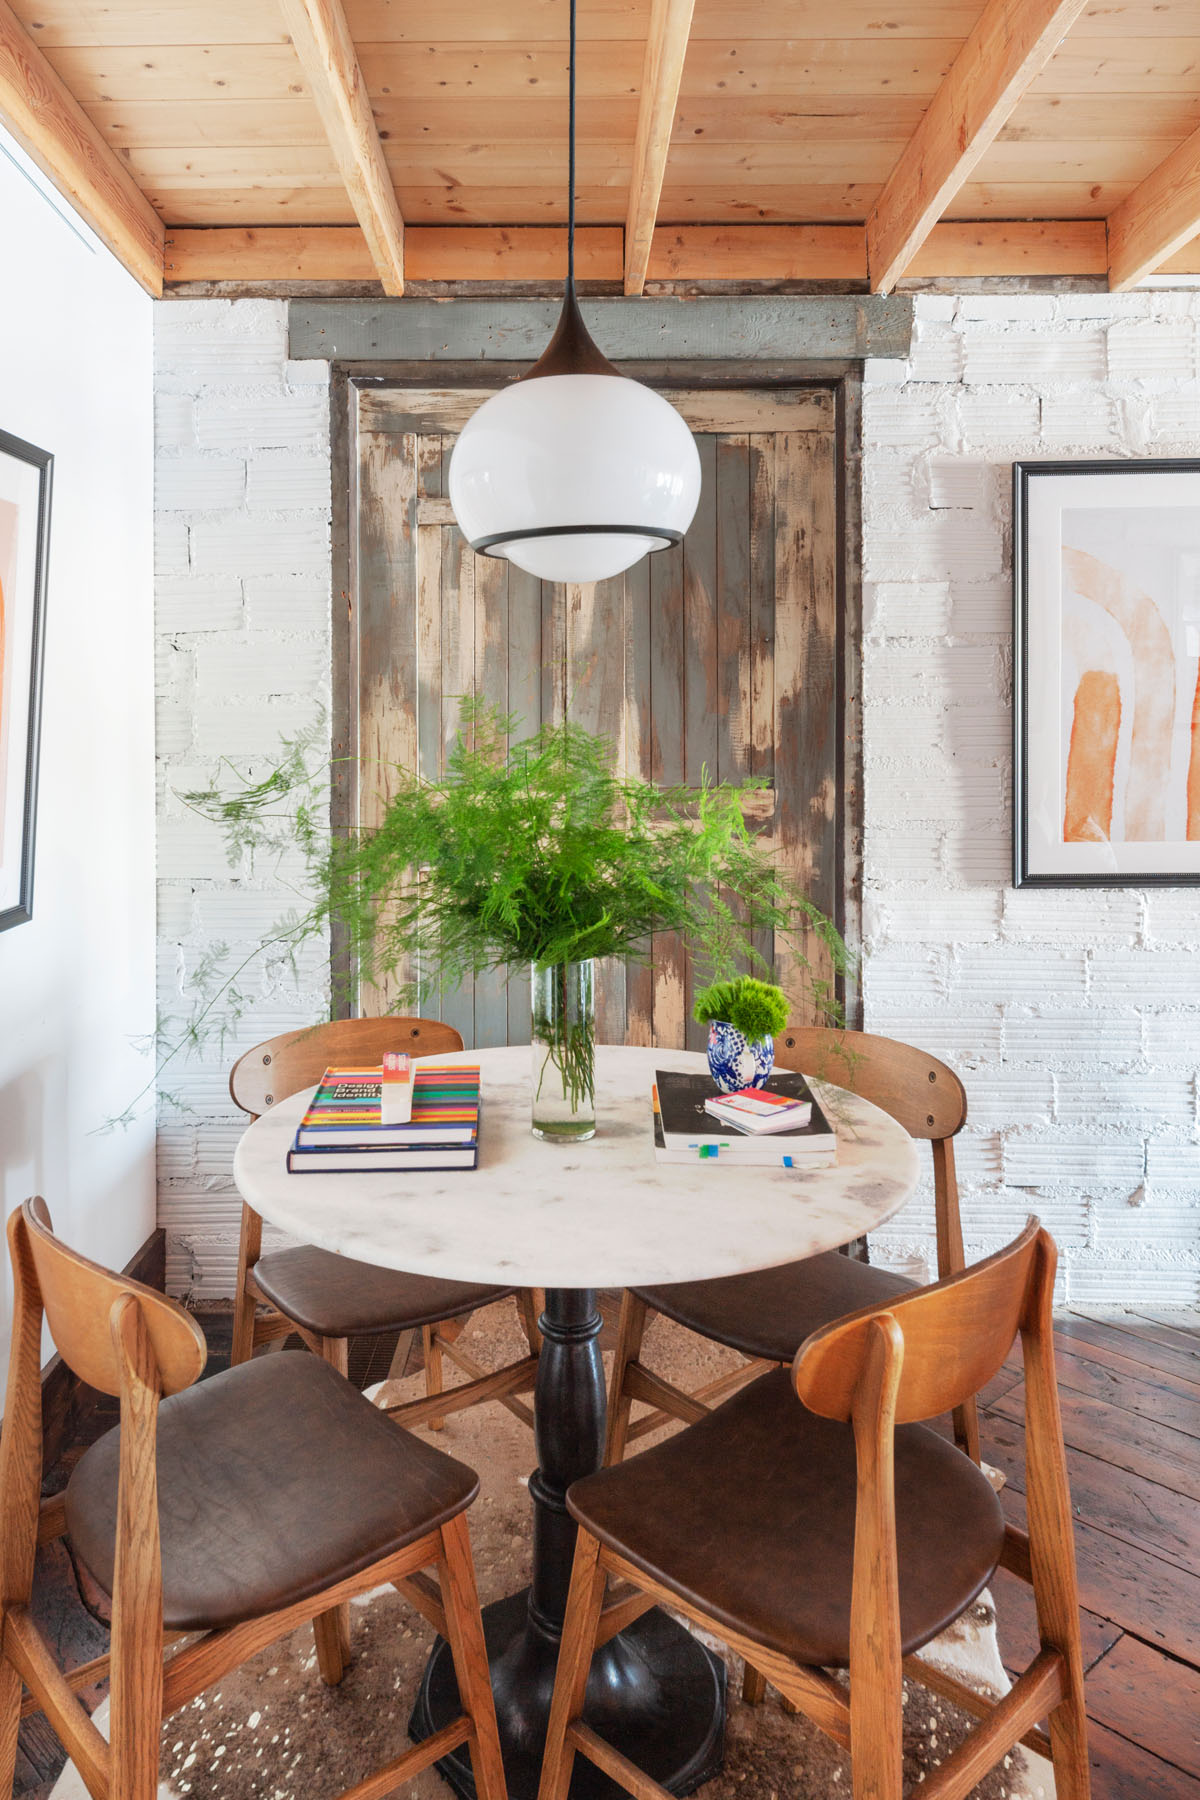 Hoot-Scout-And-Nimble-Edgy-Eclectic-Warm-Tones-Office47.jpg